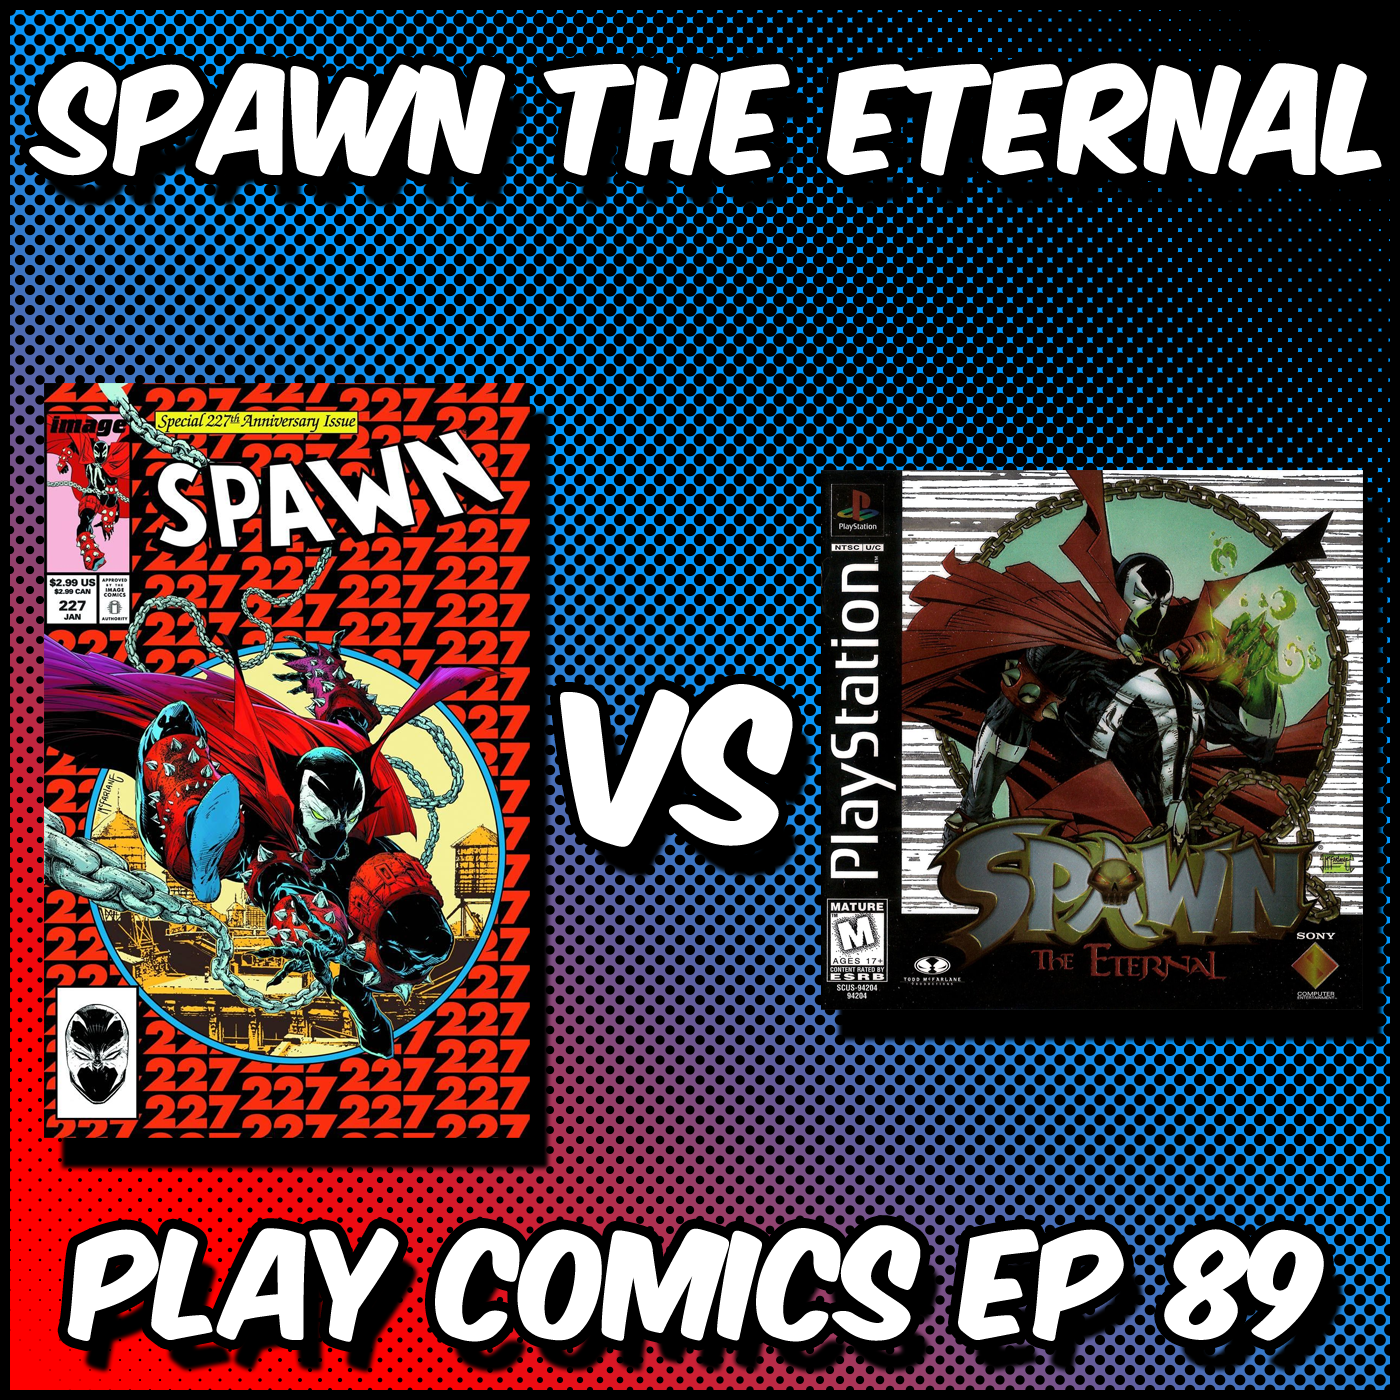 Spawn the Eternal with Andrew Reiner (Game Informer, The Spectacular Comic Book Podcast)